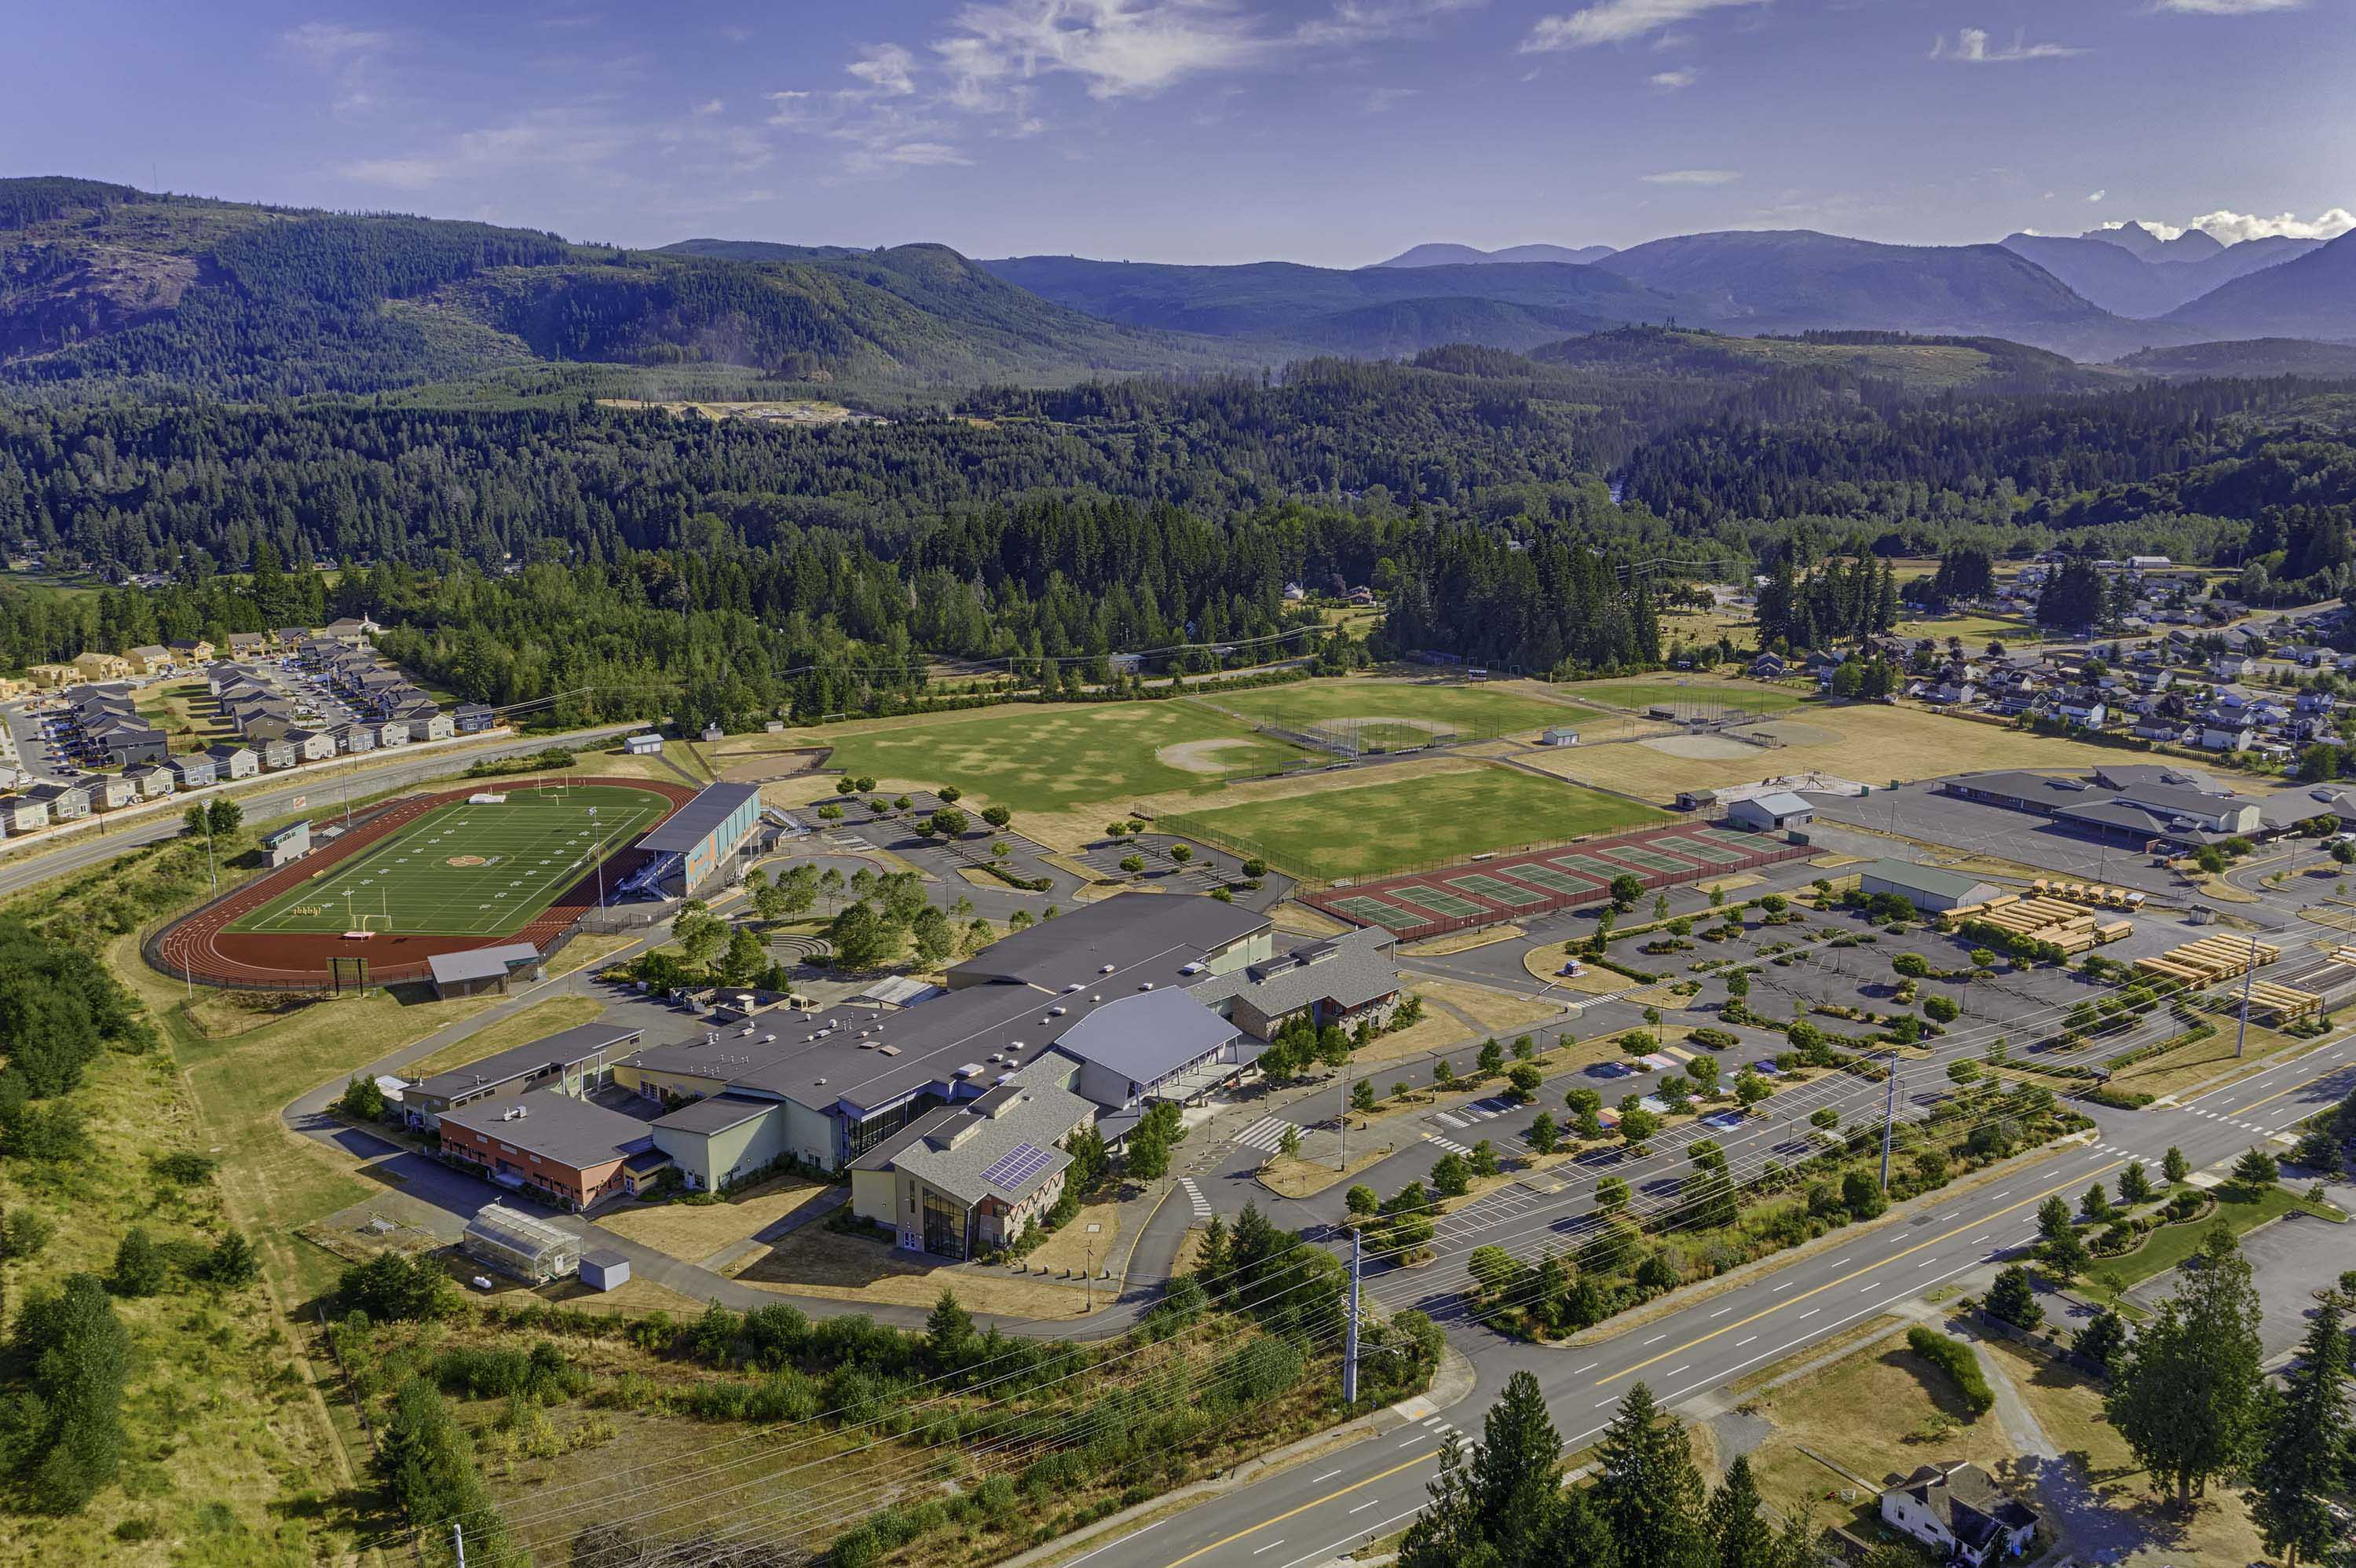 Aerial view of the campus, athletic field, and mountains off in the distance.